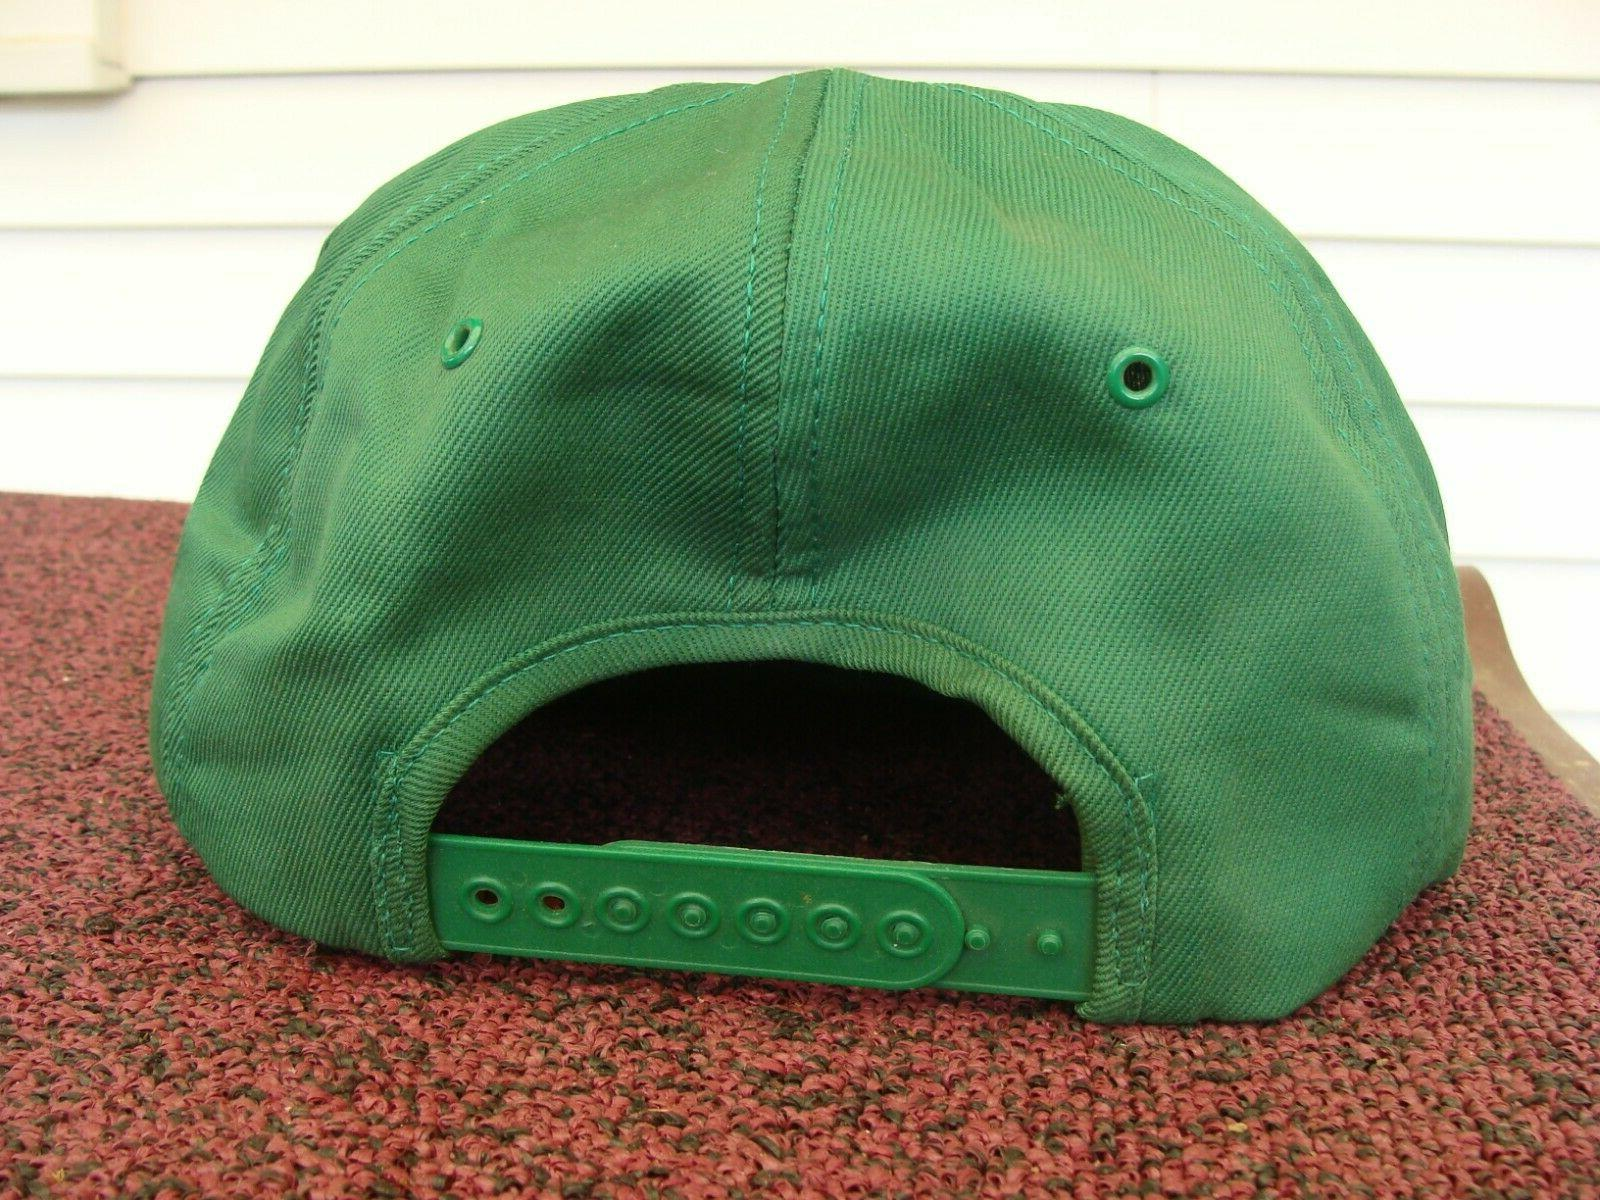 VTG. JOHN PATCH TRUCKER/HAT/CAP WORN NICE !!!